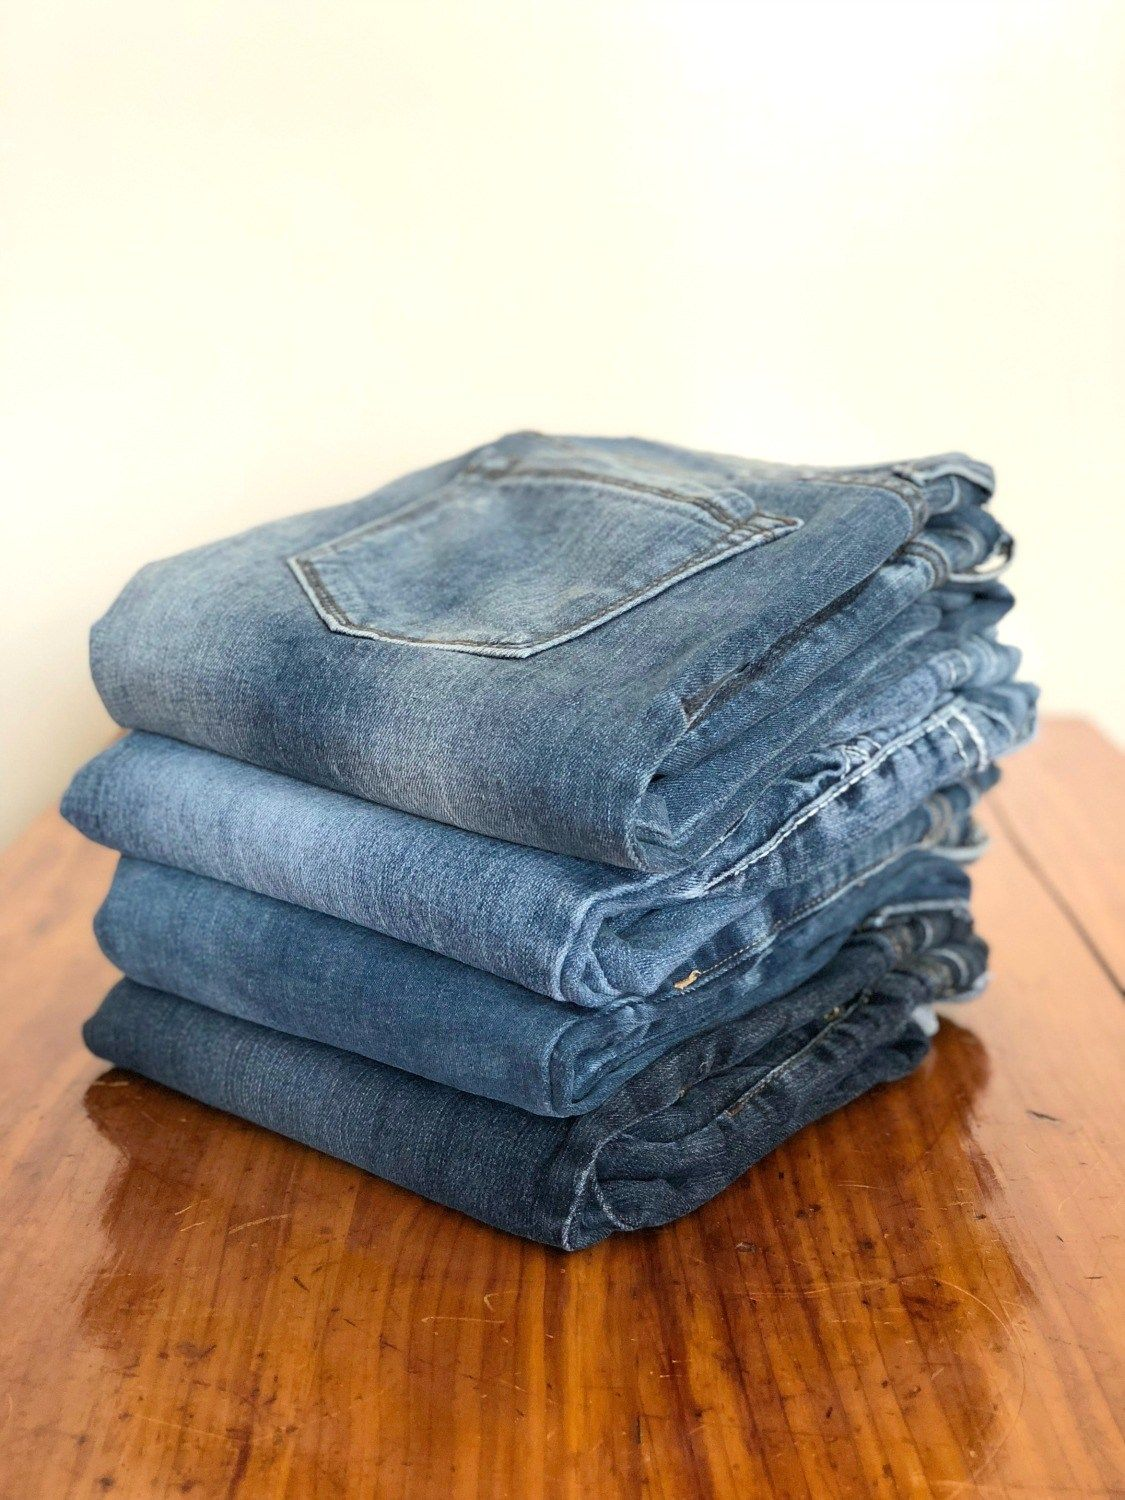 How To Fold Clothes Like A Retail Pro #foldingclothes